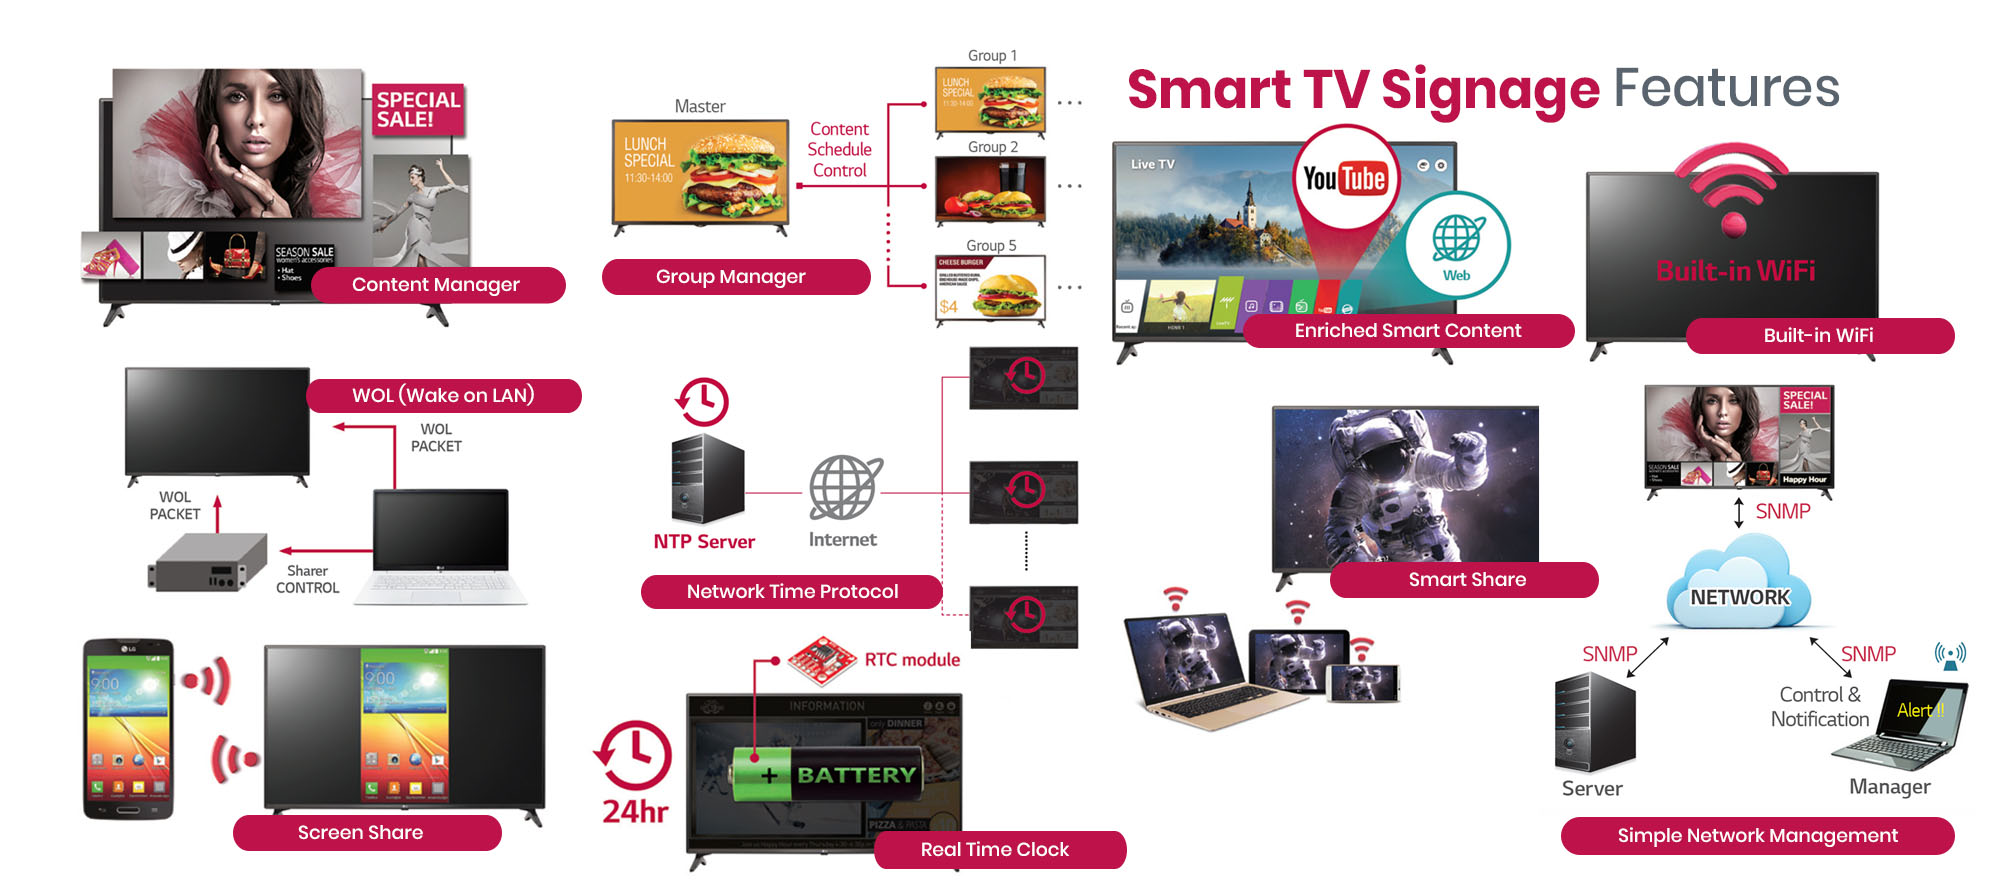 lg smart tv signage features